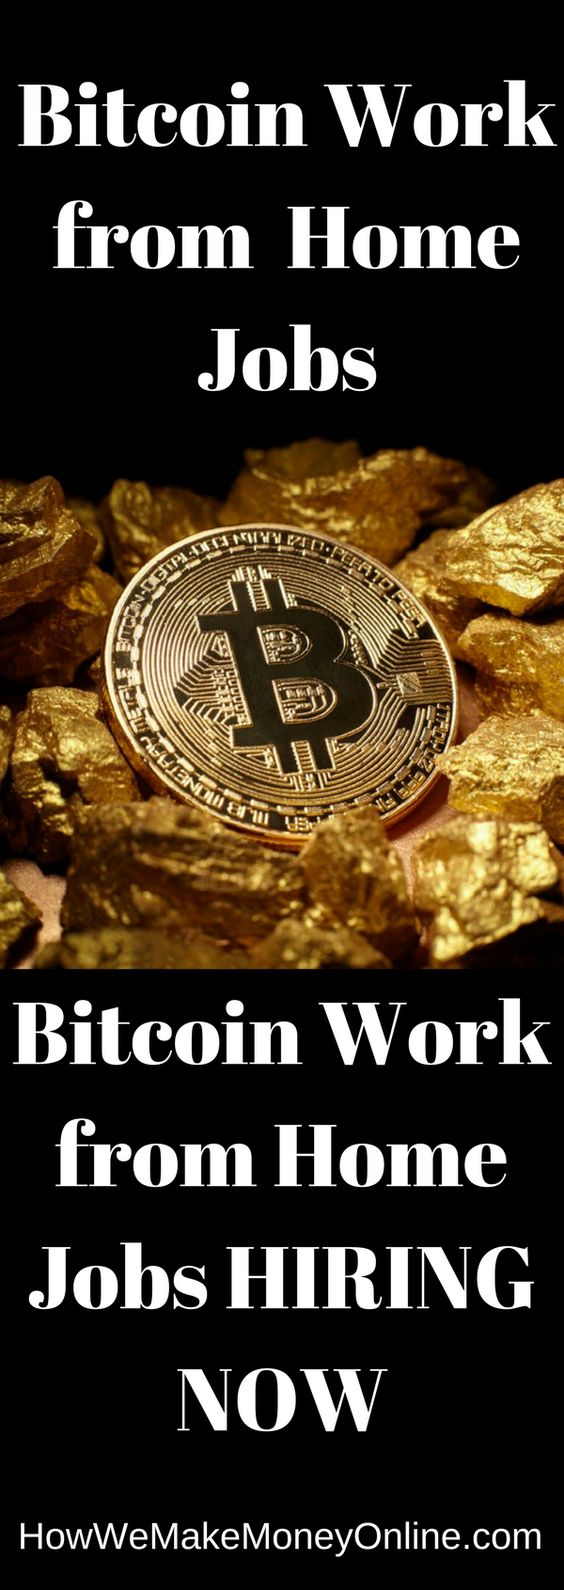 Bitcoin Work from Home Jobs - The NEW Gold Rush